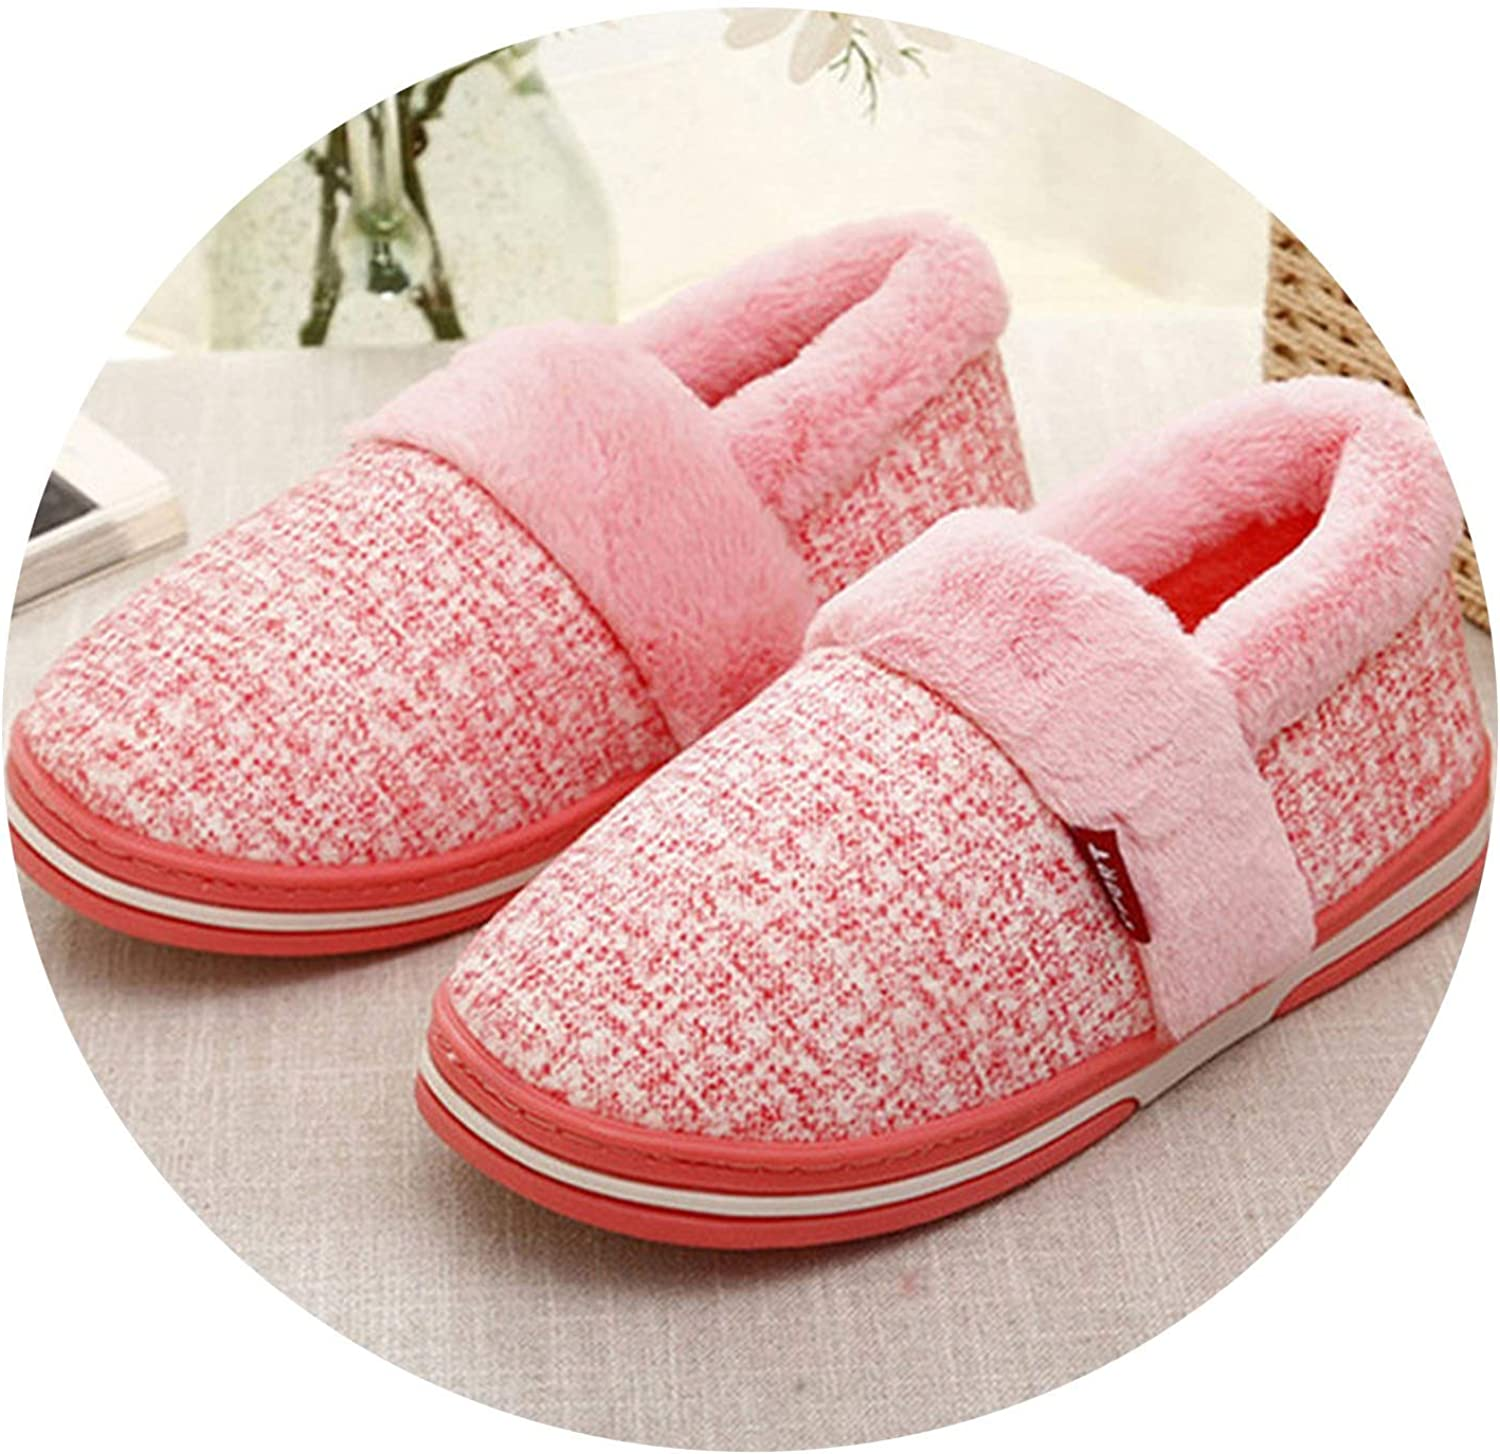 Can't be satisfied Winter Home Women Warm Plush Indoor Slippers Non Slip Flats Cotton Ladies Slip On Lazy Loafers,Pink,8